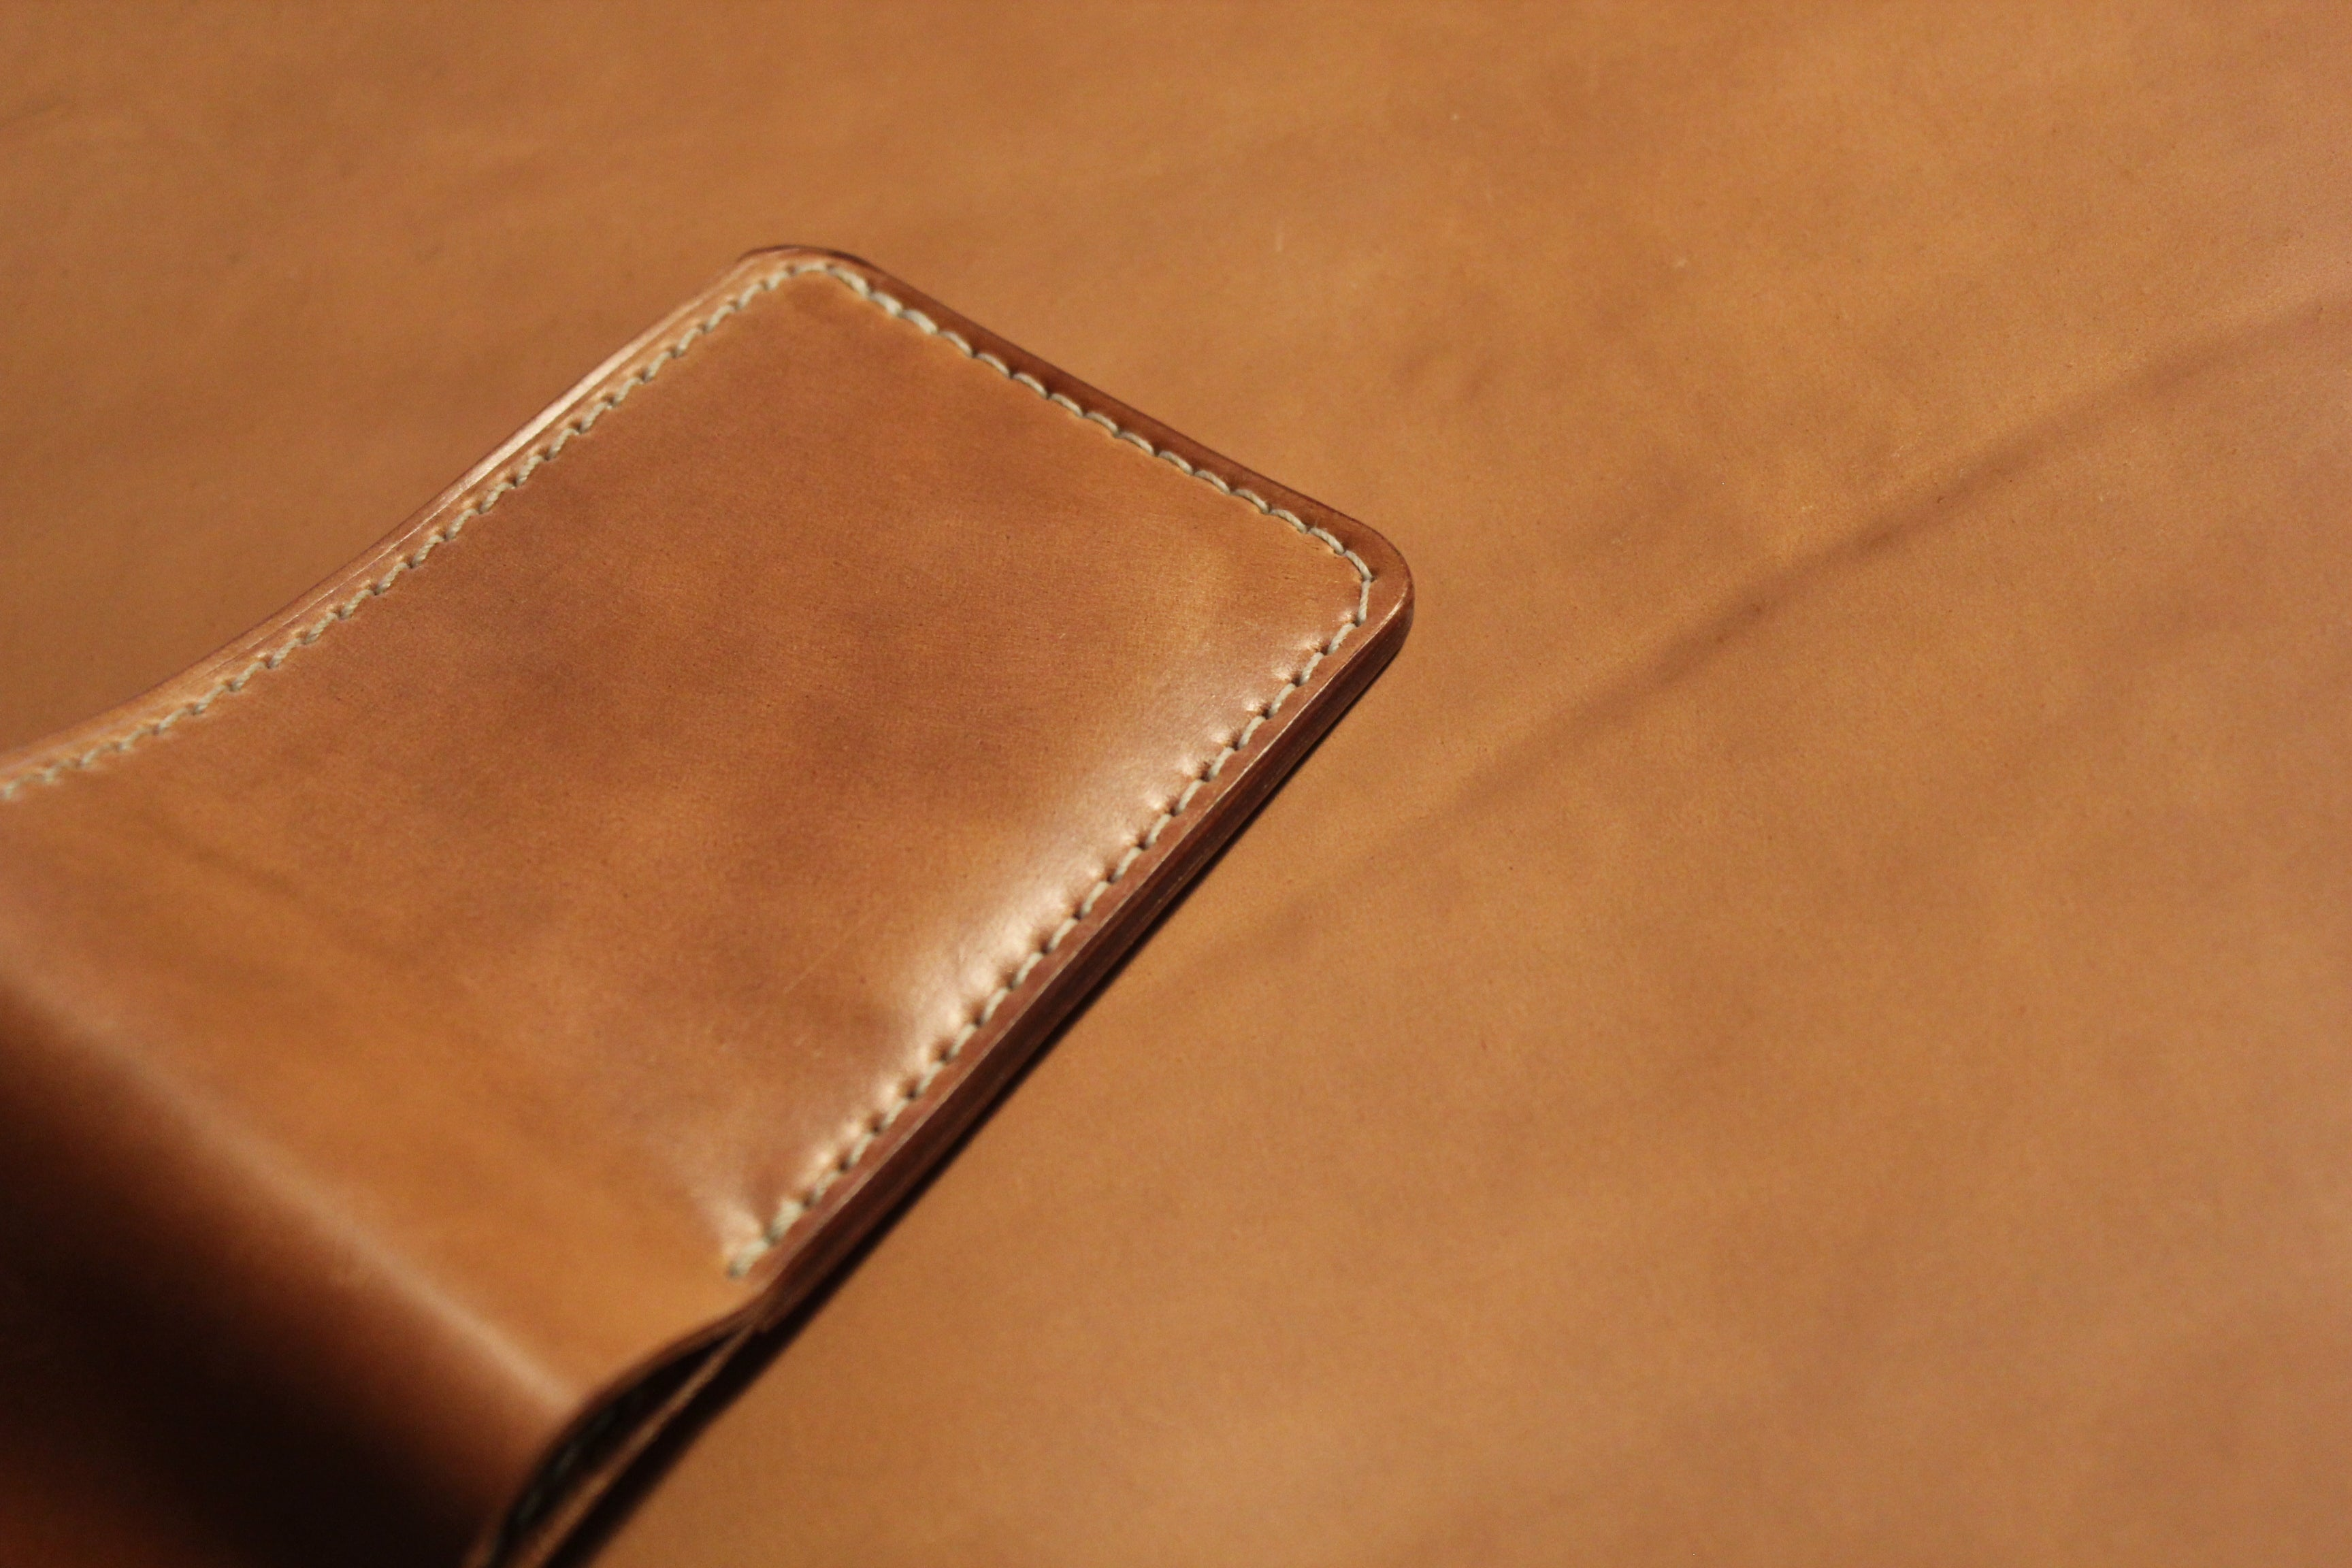 Horween Unglazed Natural Shell Cordovan with Venetian Leather Balm Application